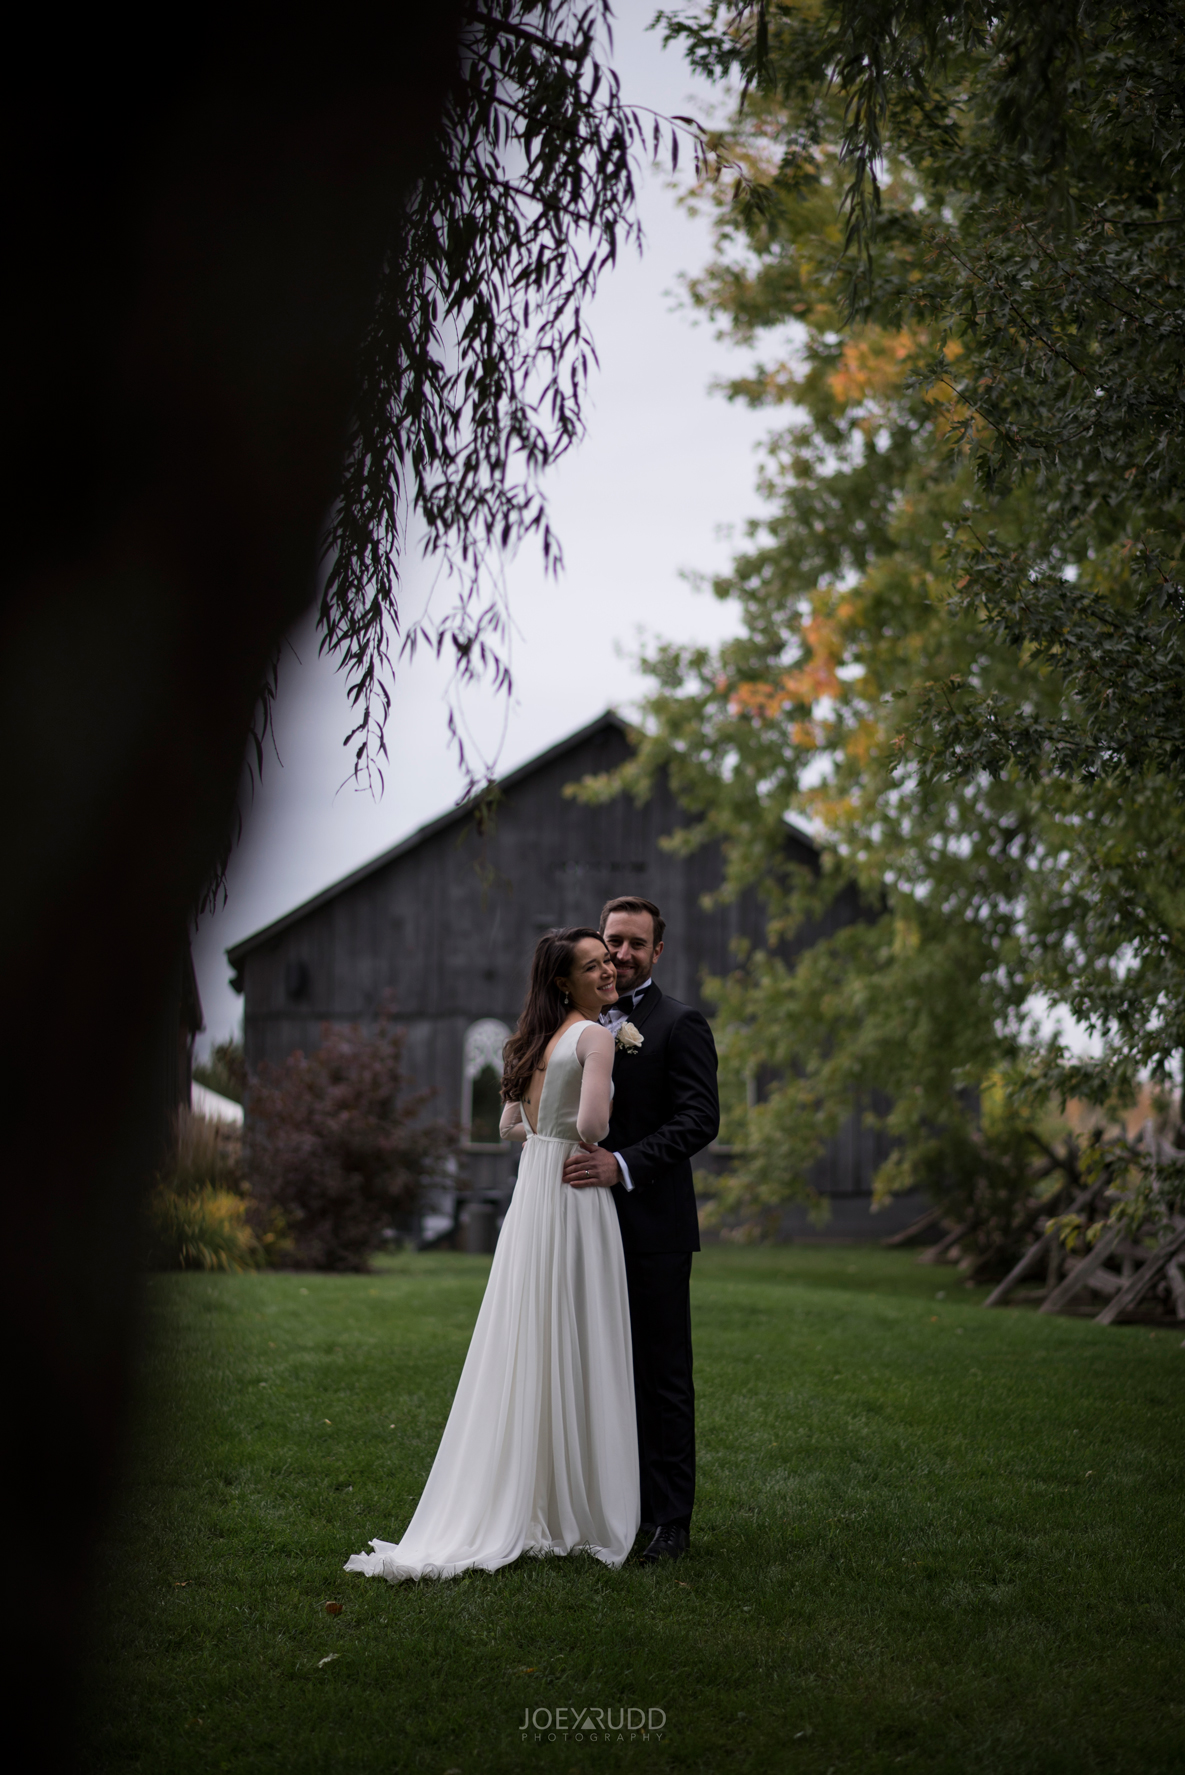 Evermore Wedding, Evermore Wedding and Events, Ottawa Wedding, Almonte Wedding, Ottawa Photographer, Wedding Photography, Wedding Photographer, Joey Rudd Photography, Farm Wedding, Rustic Wedding, Barn Wedding Venue, Wedding Venue, Ottawa Wedding Venue, Almonte Riverside Inn, Candid, fun